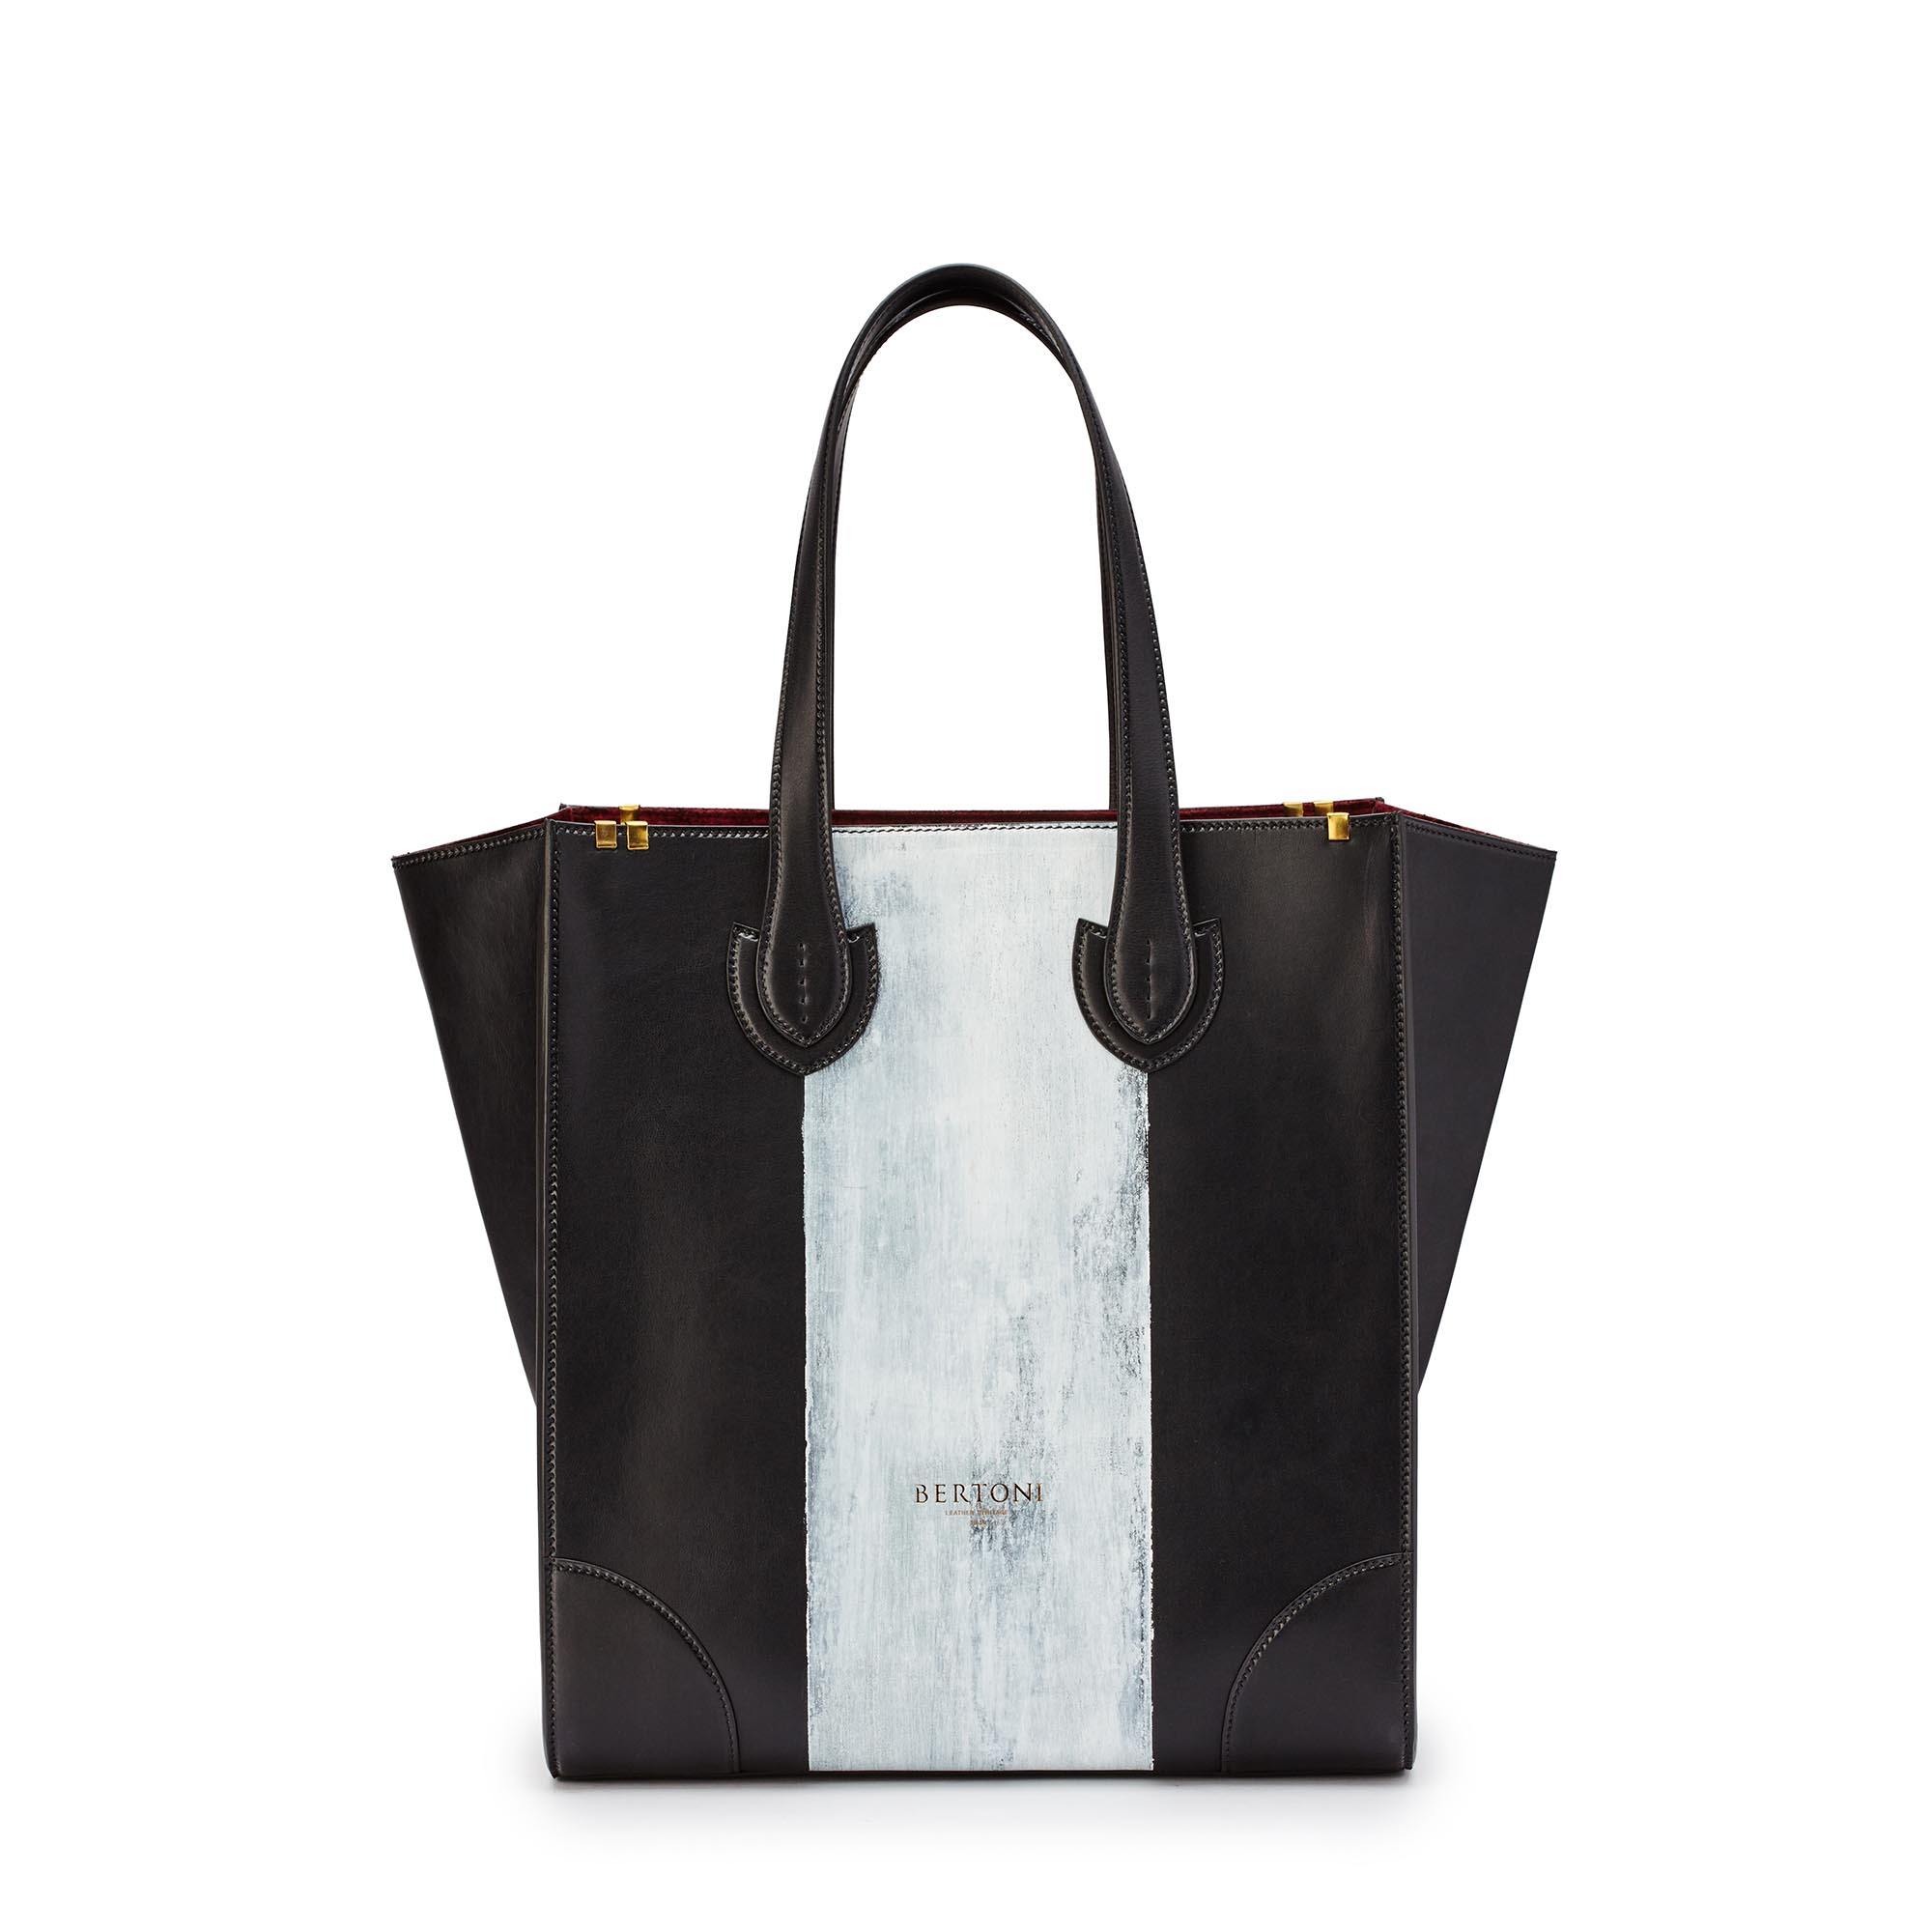 Signature-Tote-black-rock-calf-bag-Bertoni-1949_01